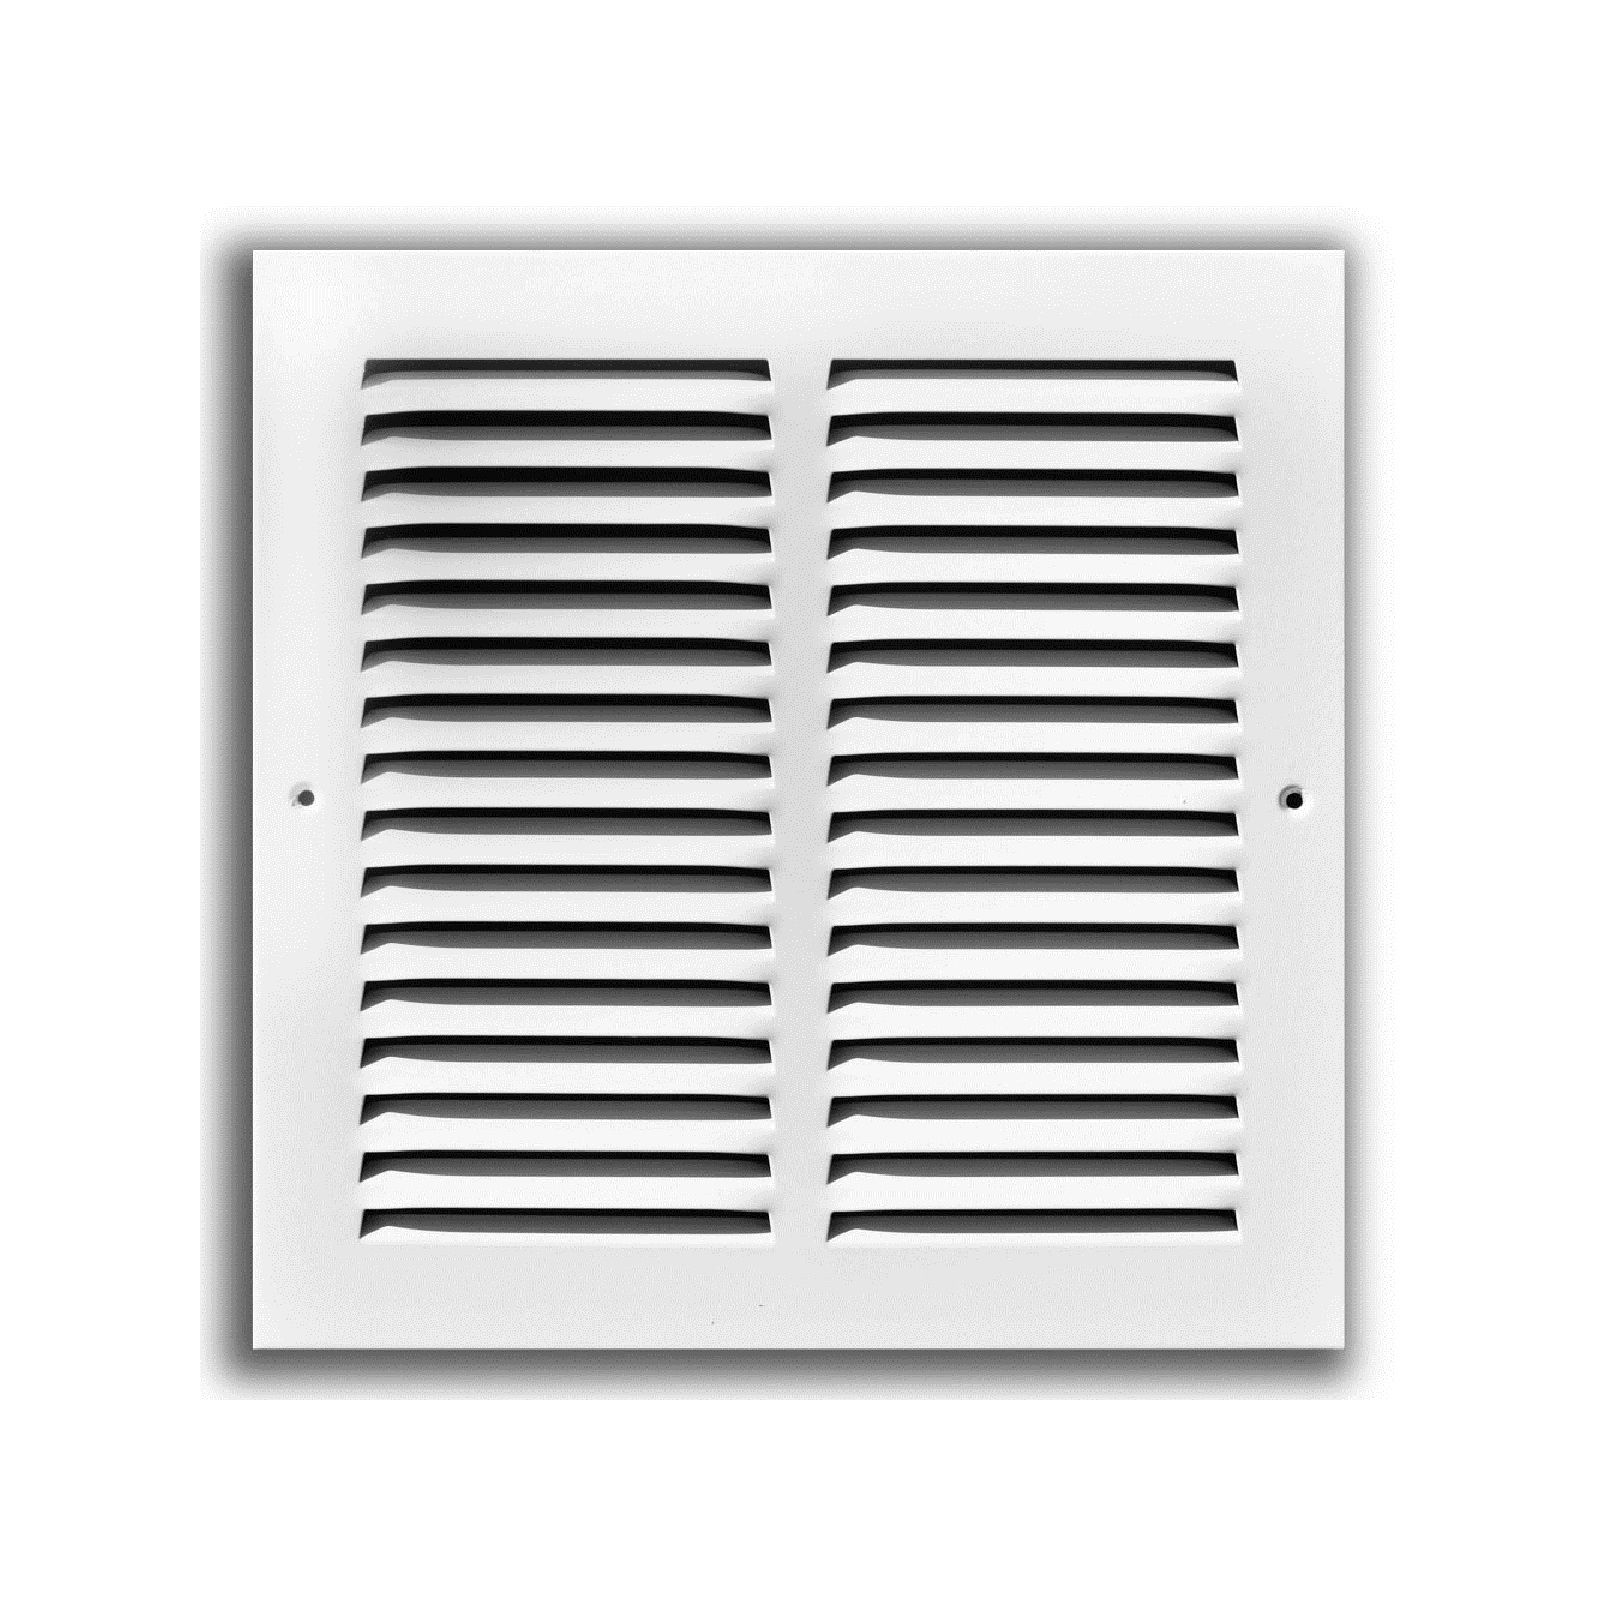 "TRUaire 170 14X24 - Steel Return Air Grille - 1/2"" Spaced Fin, White, 14"" X 24"""